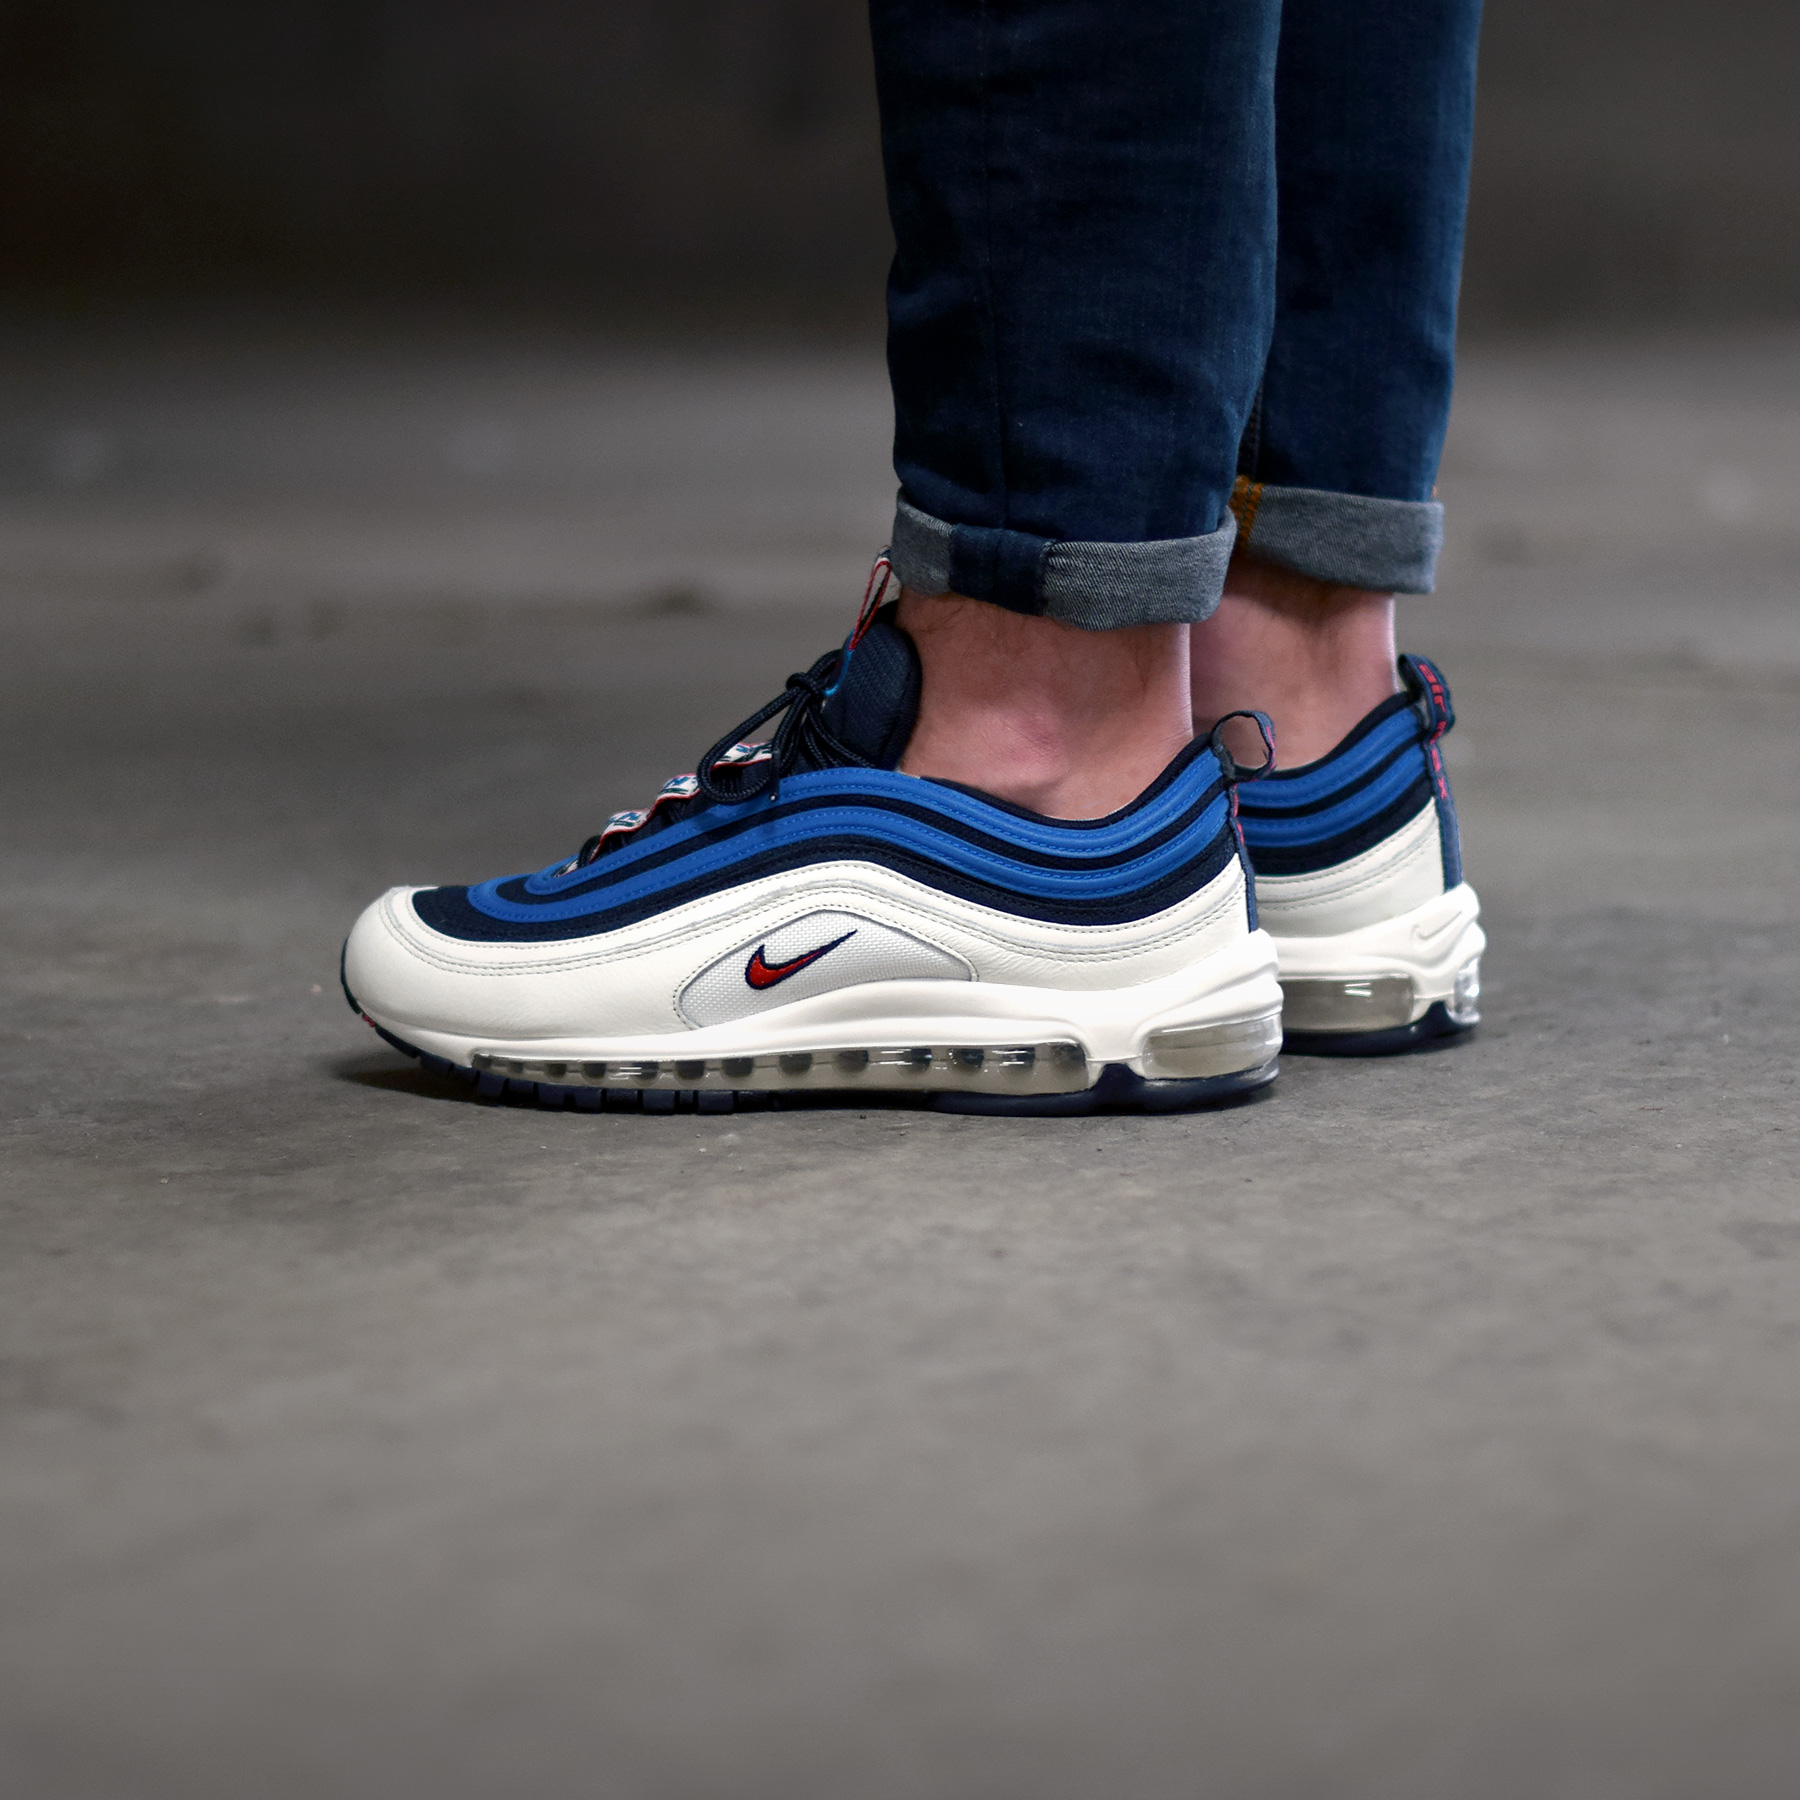 promo code 7b259 98a7a Nike Air Max 97 SE Obsidian « Pull Tab » - Sneakers.fr